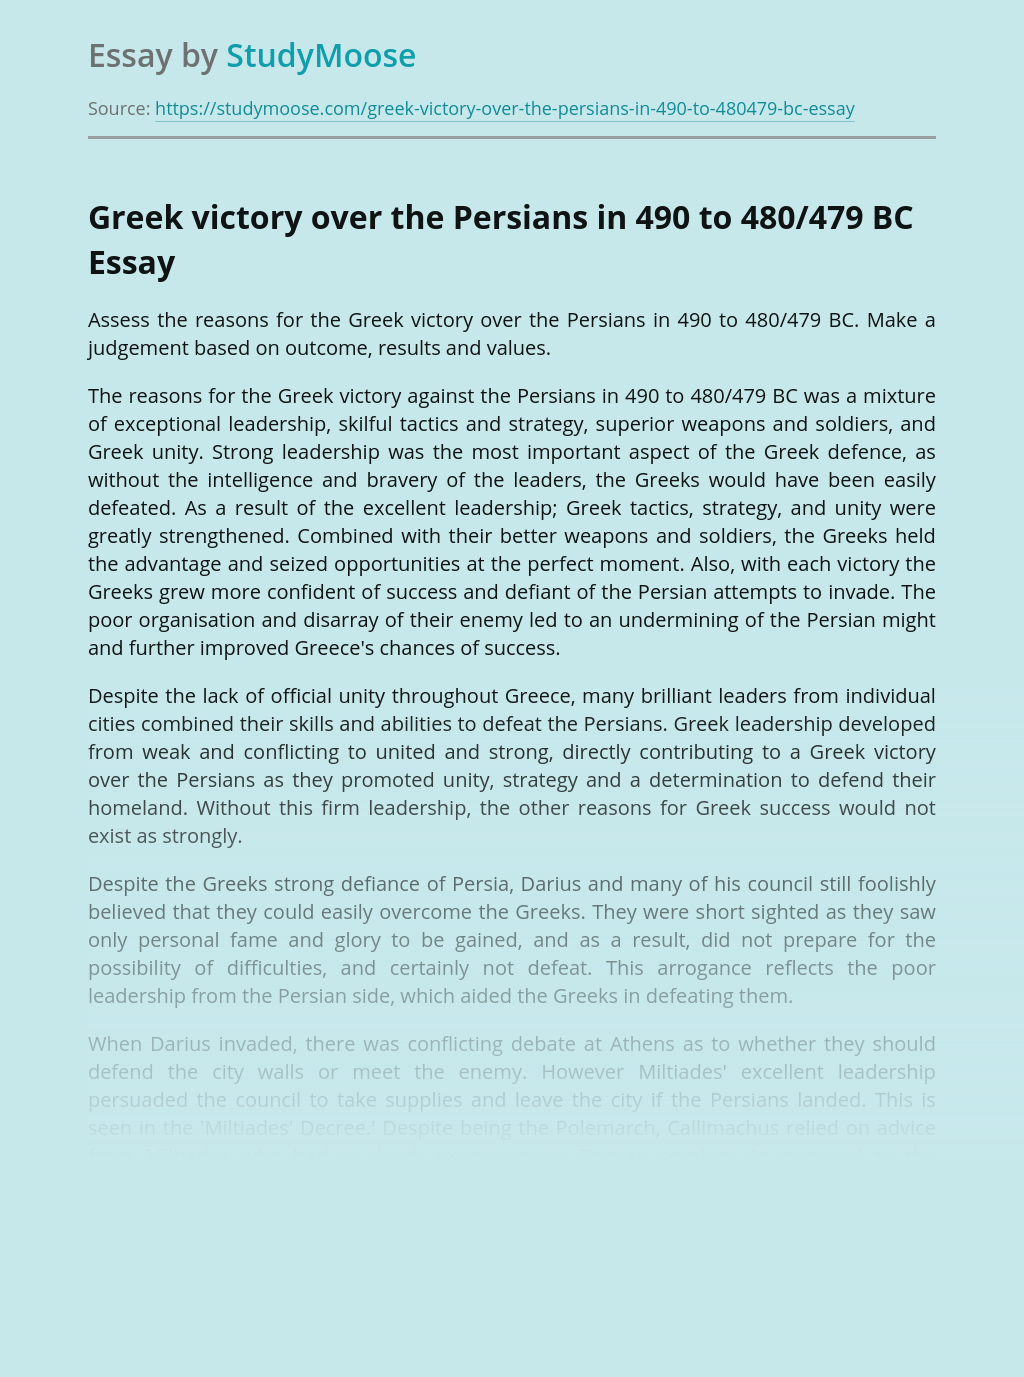 Greek Victory Over the Persians in History